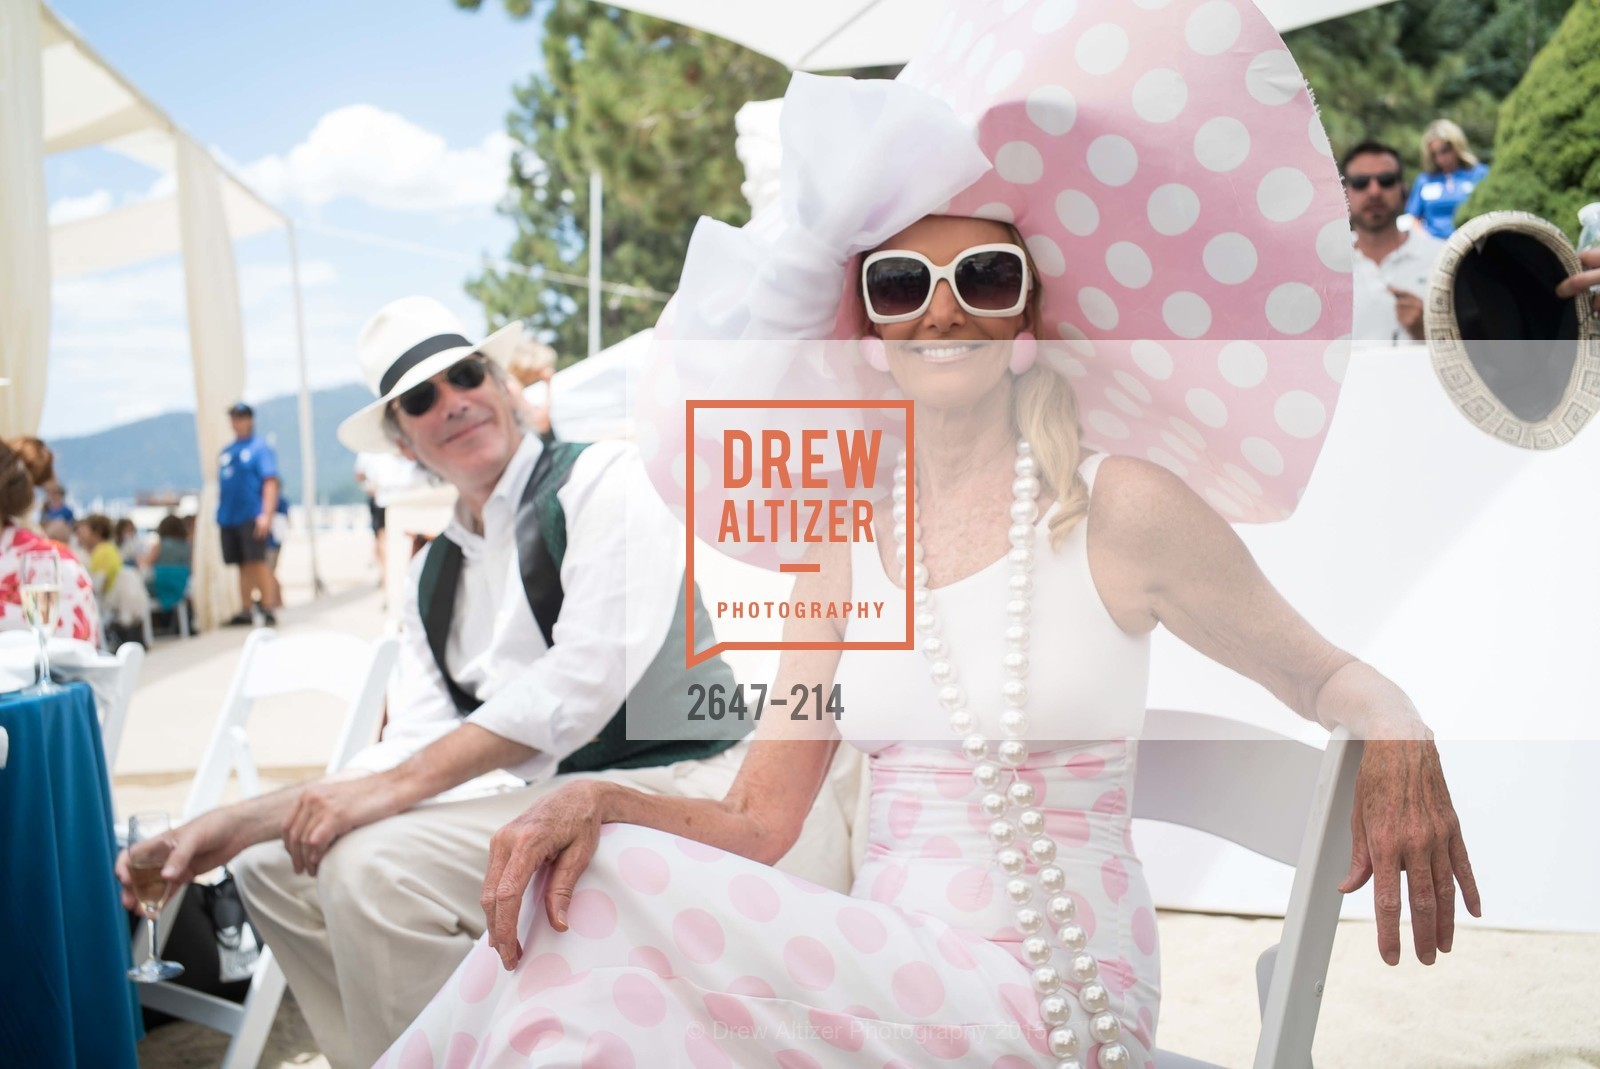 Belinda Berry, Saks Fifth Avenue and The League to Save Lake Tahoe Present Fashion on the Lake, Private Residence, August 1st, 2015,Drew Altizer, Drew Altizer Photography, full-service event agency, private events, San Francisco photographer, photographer California